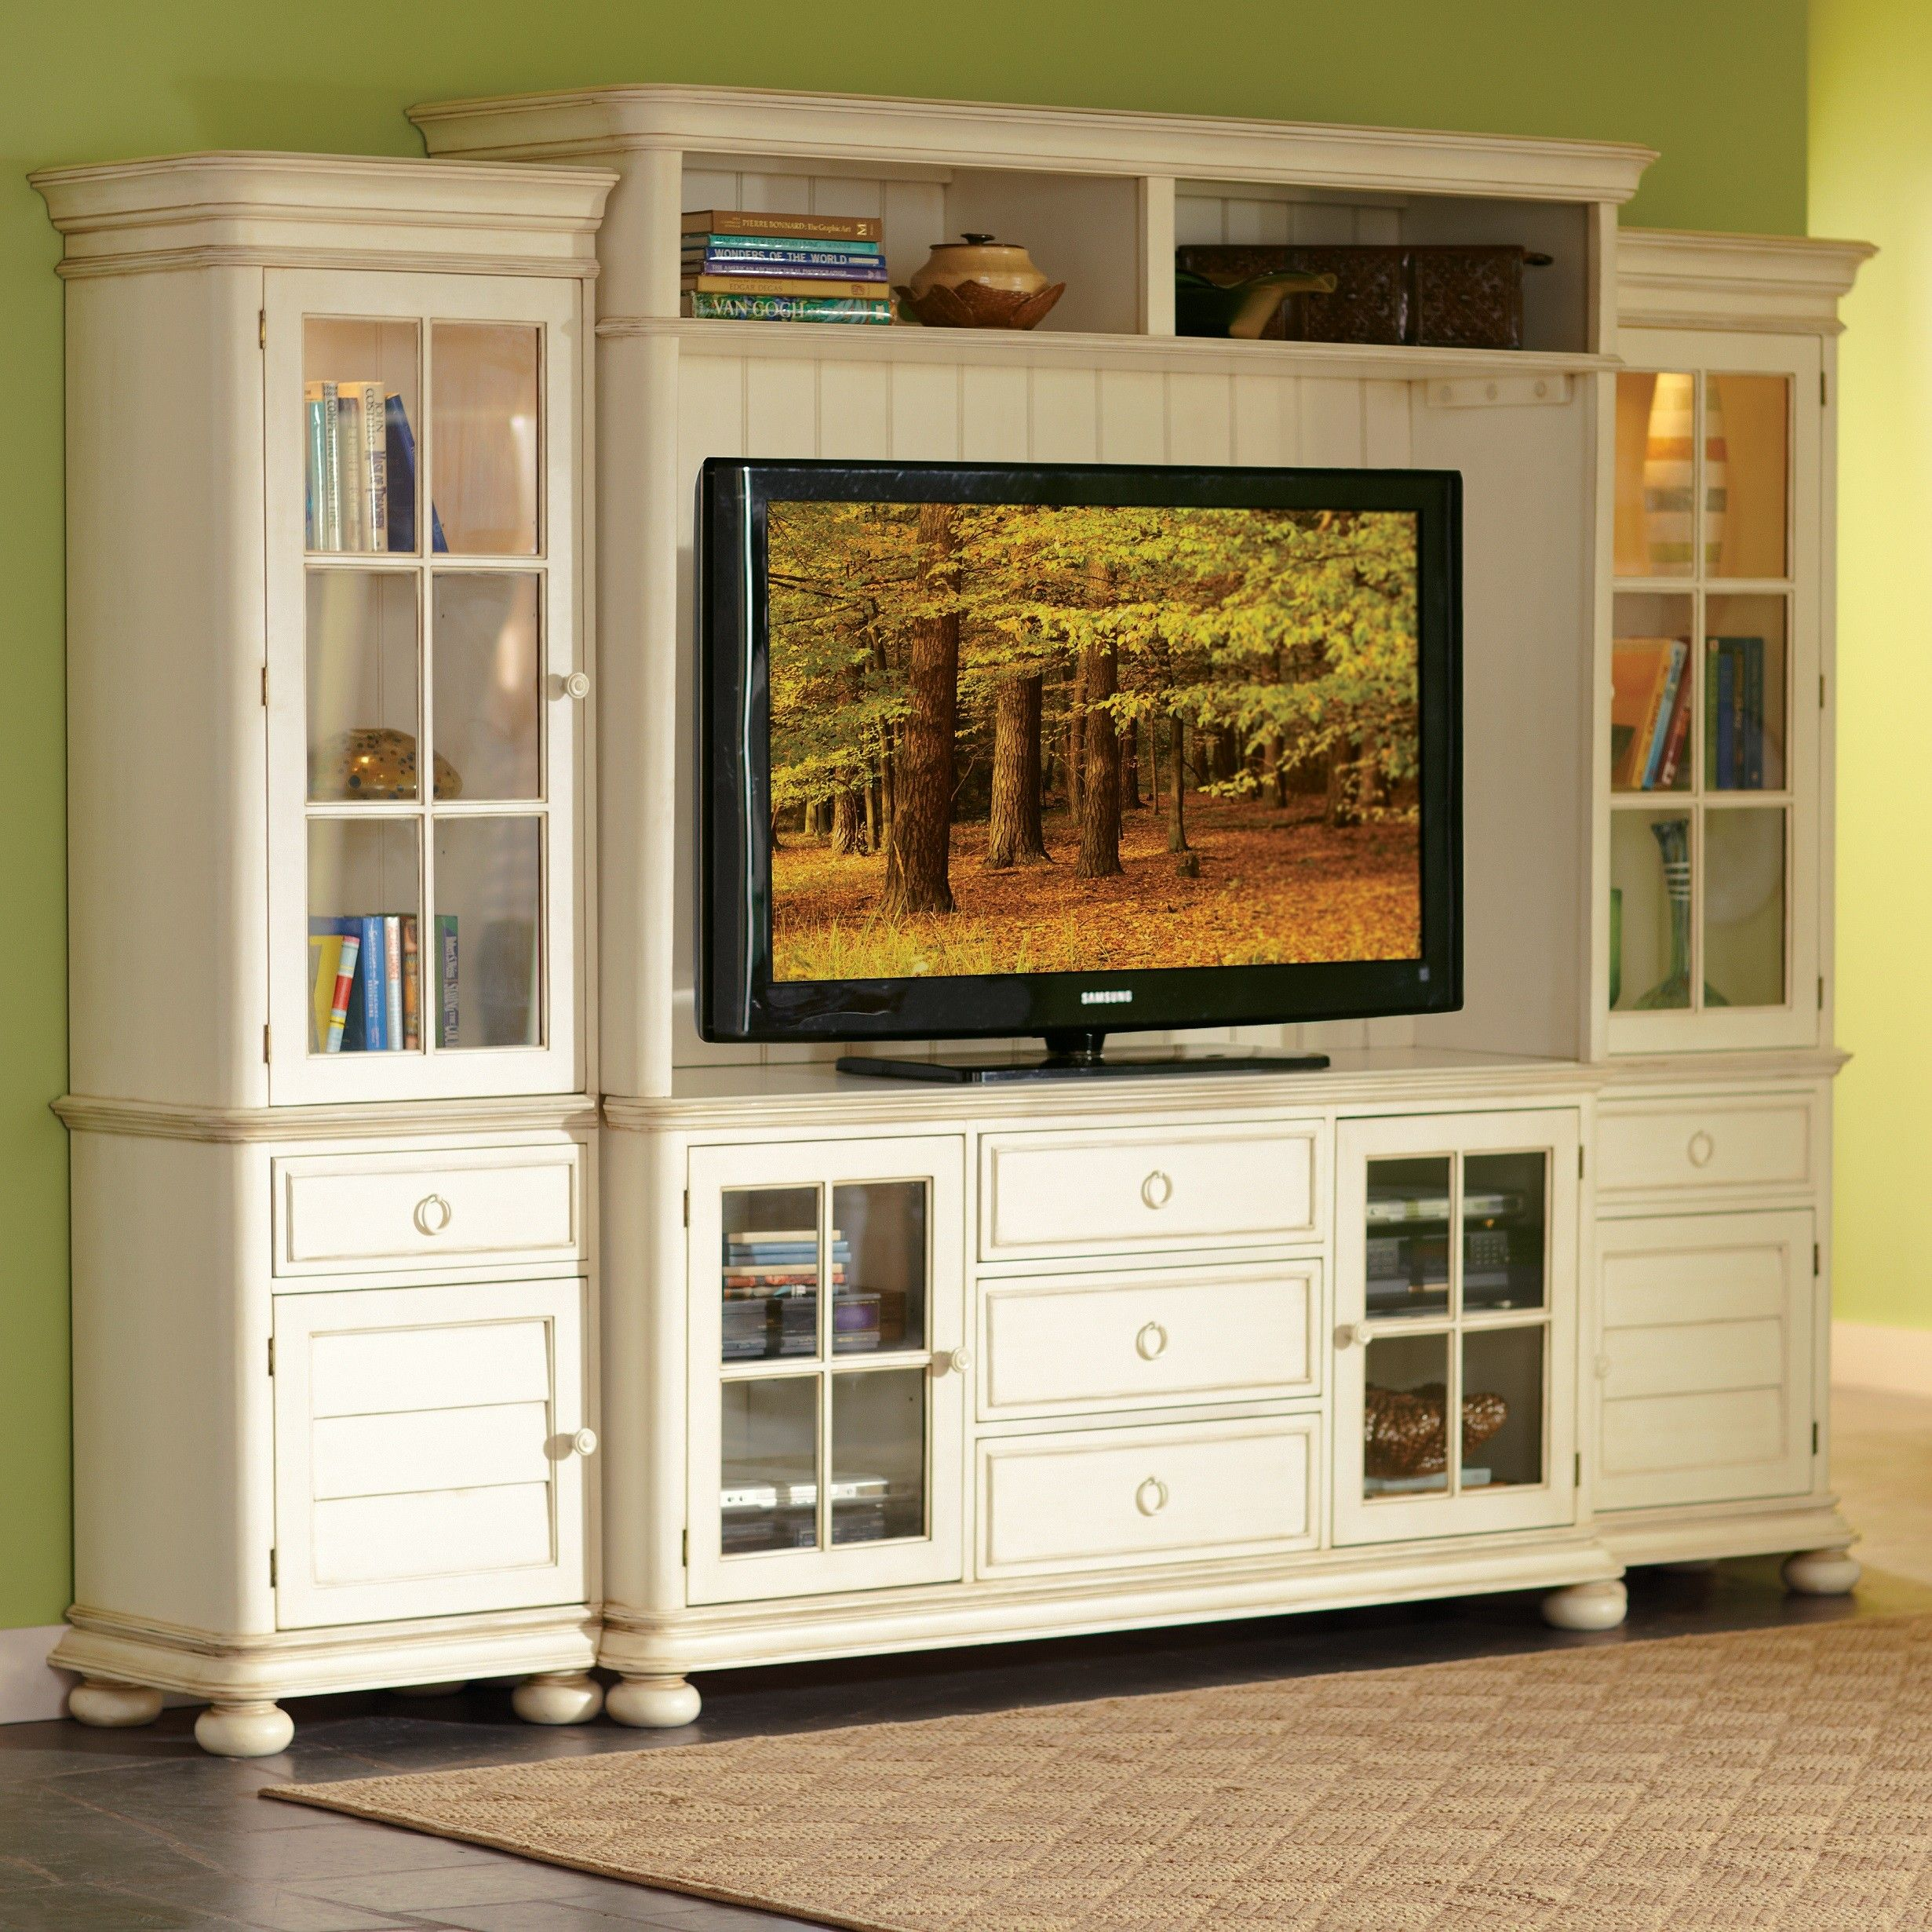 Built In Entertainment Center Design Ideas house project built in entertainment center the style files Entertainment